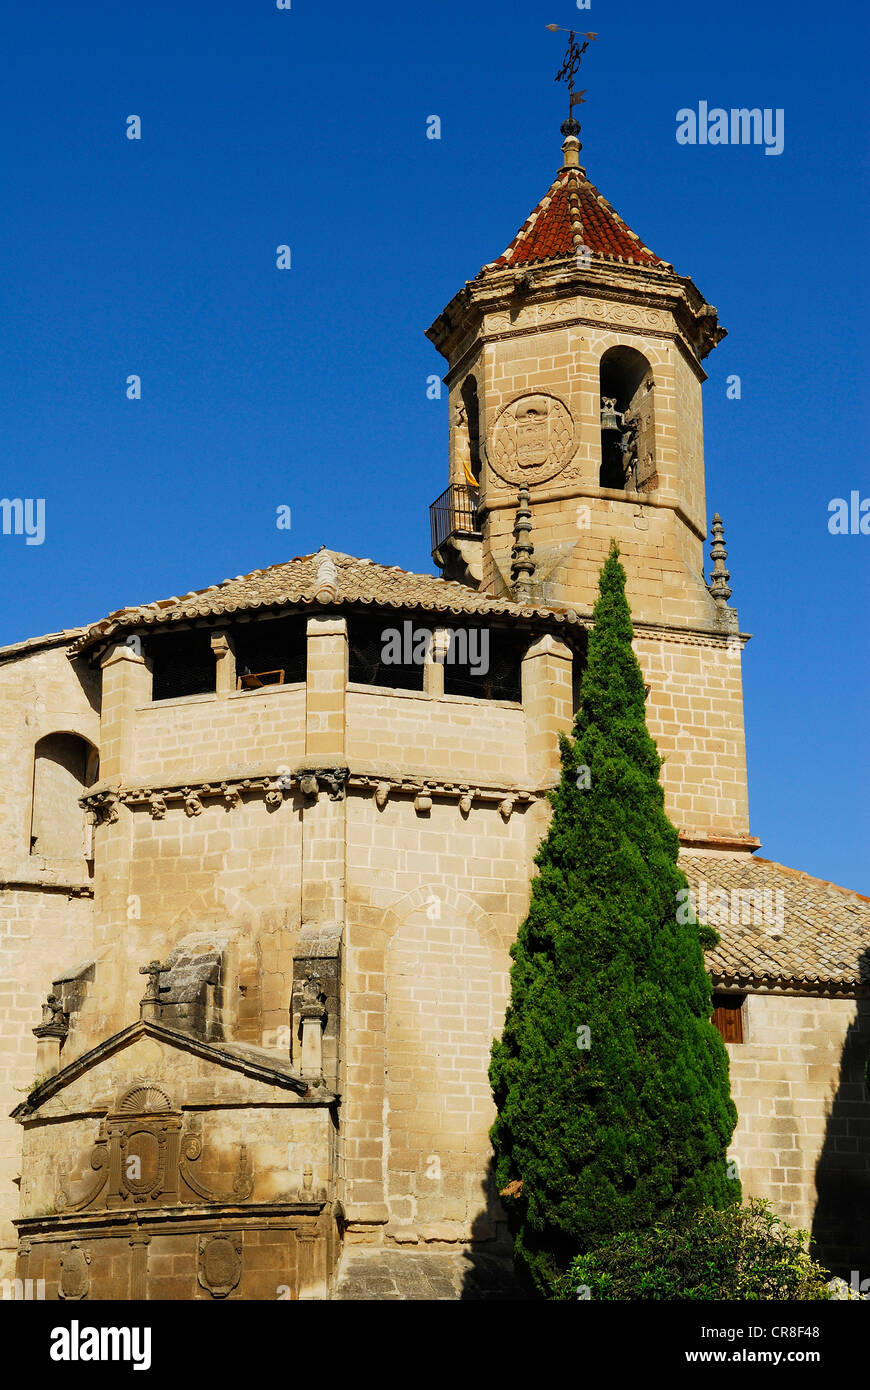 Spain, Andalusia, province of Jaen, Ubeda, city UNESCO World Heritage, 1st May Square, St Paul Church - Stock Image